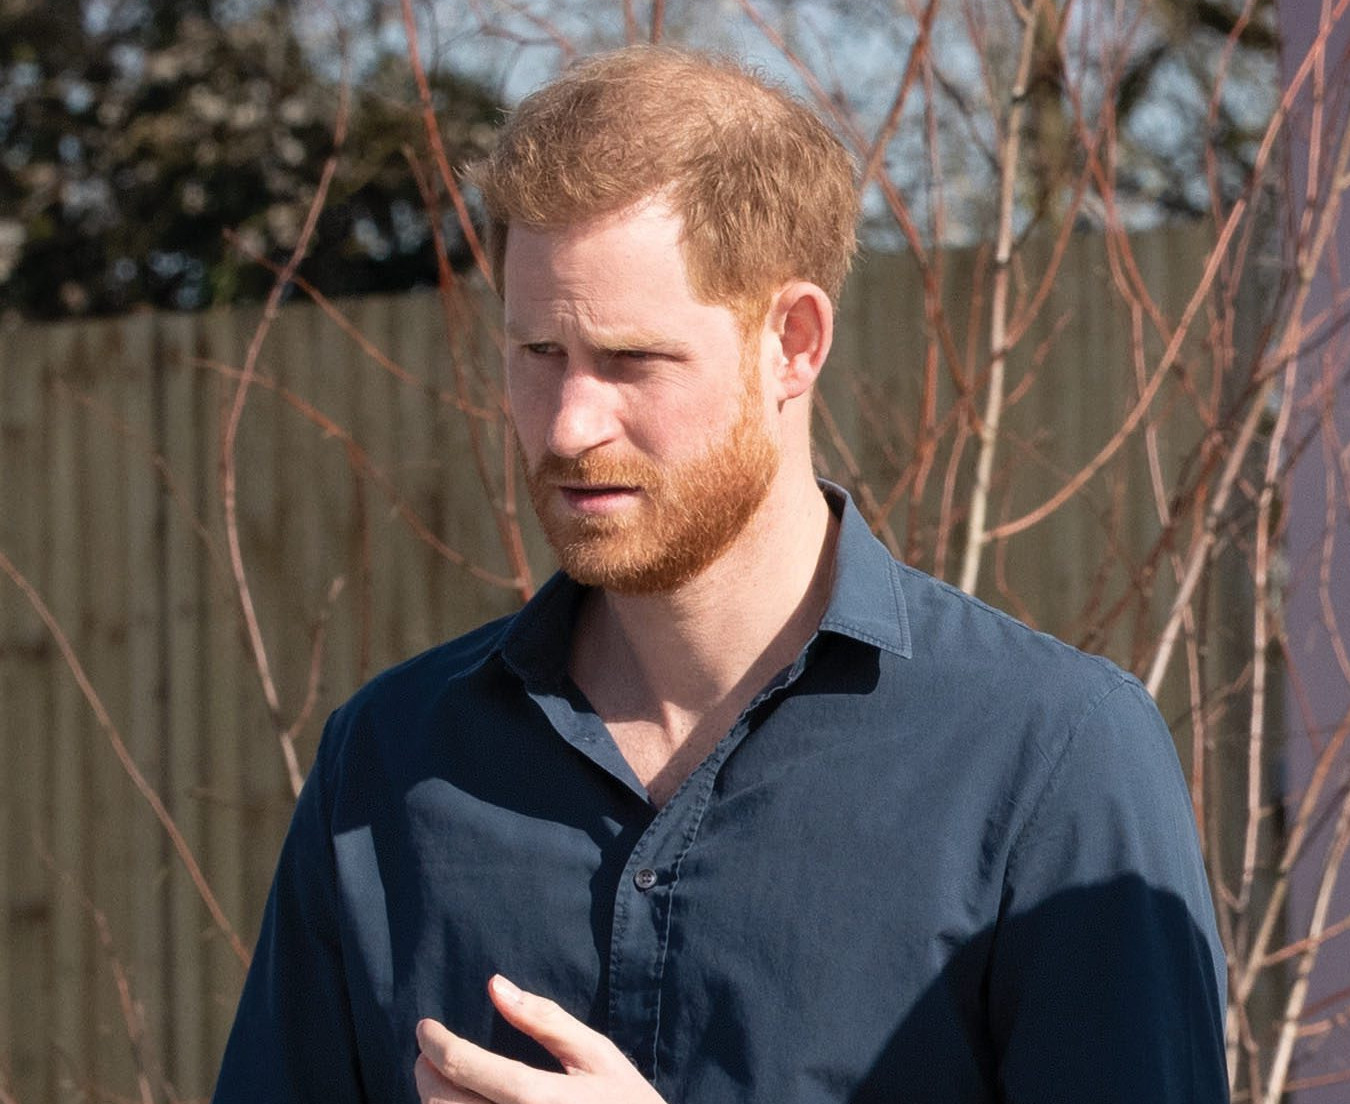 Prince Harry Pens Emotional Letter Thanking Landmine Charity For All Their Hard Work Amid Coronavirus Crisis